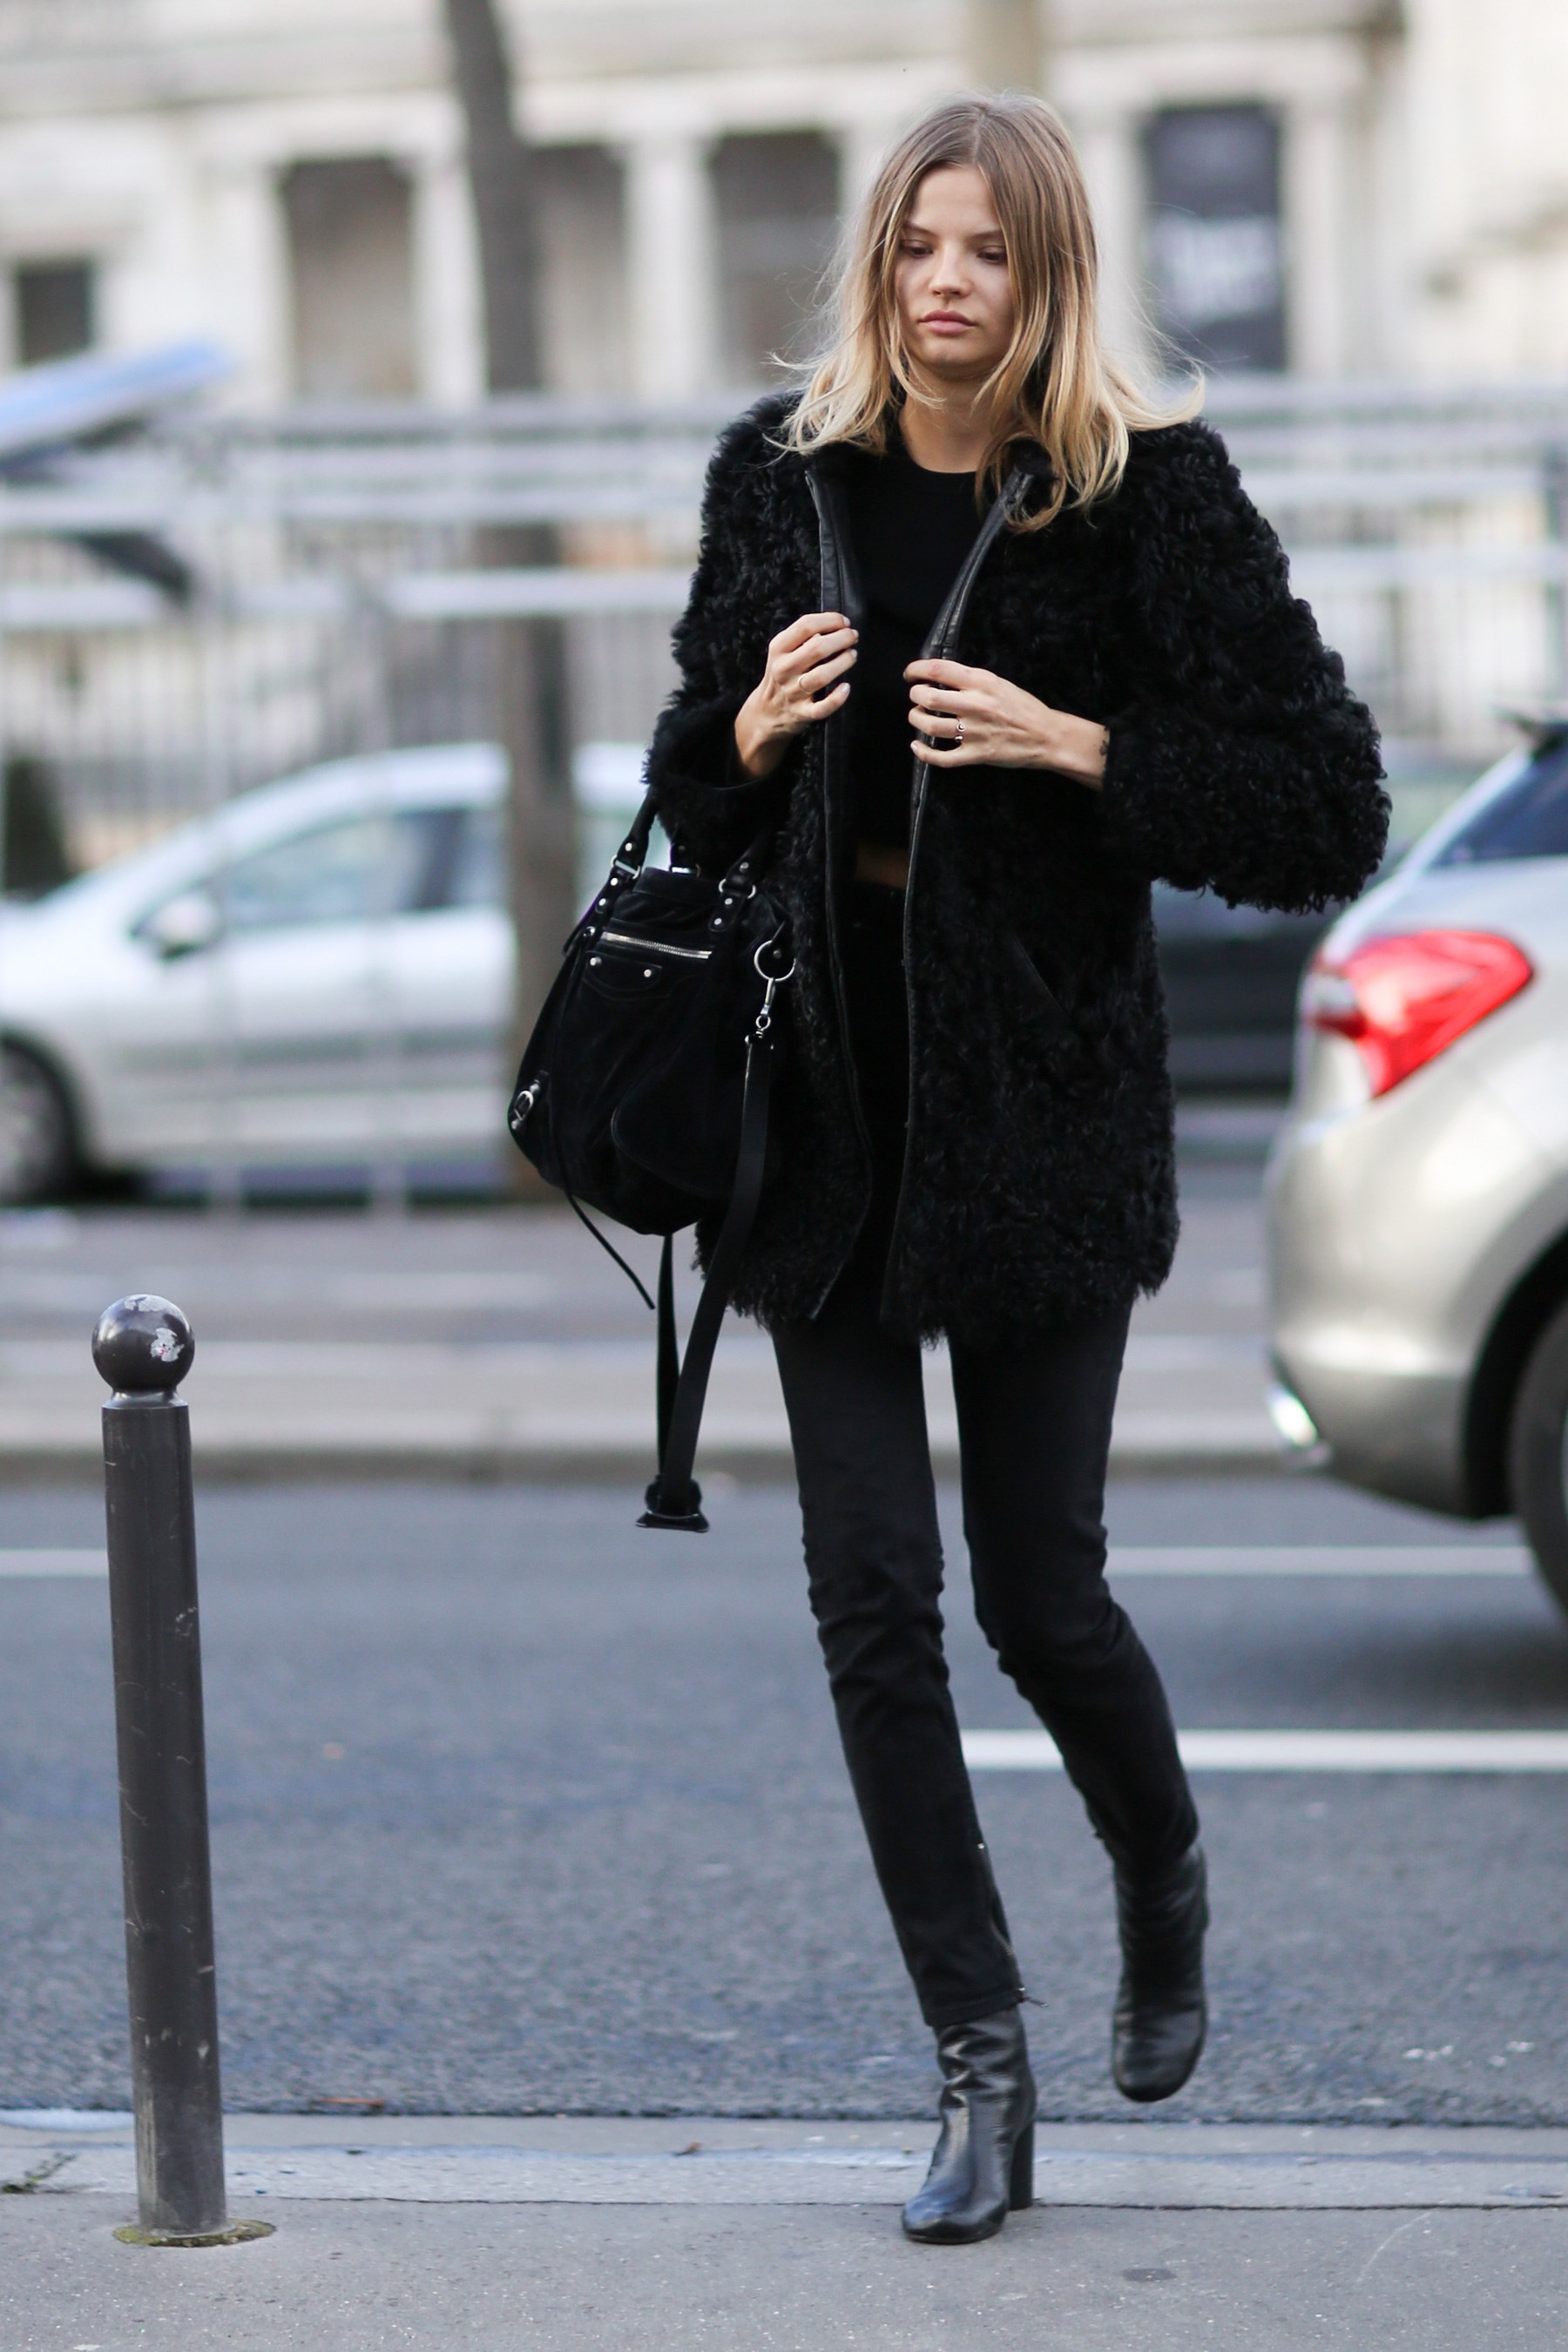 Magdalena Frackowiak radiates off-duty chic in black cigarette denim and a voluminous shearling coat.